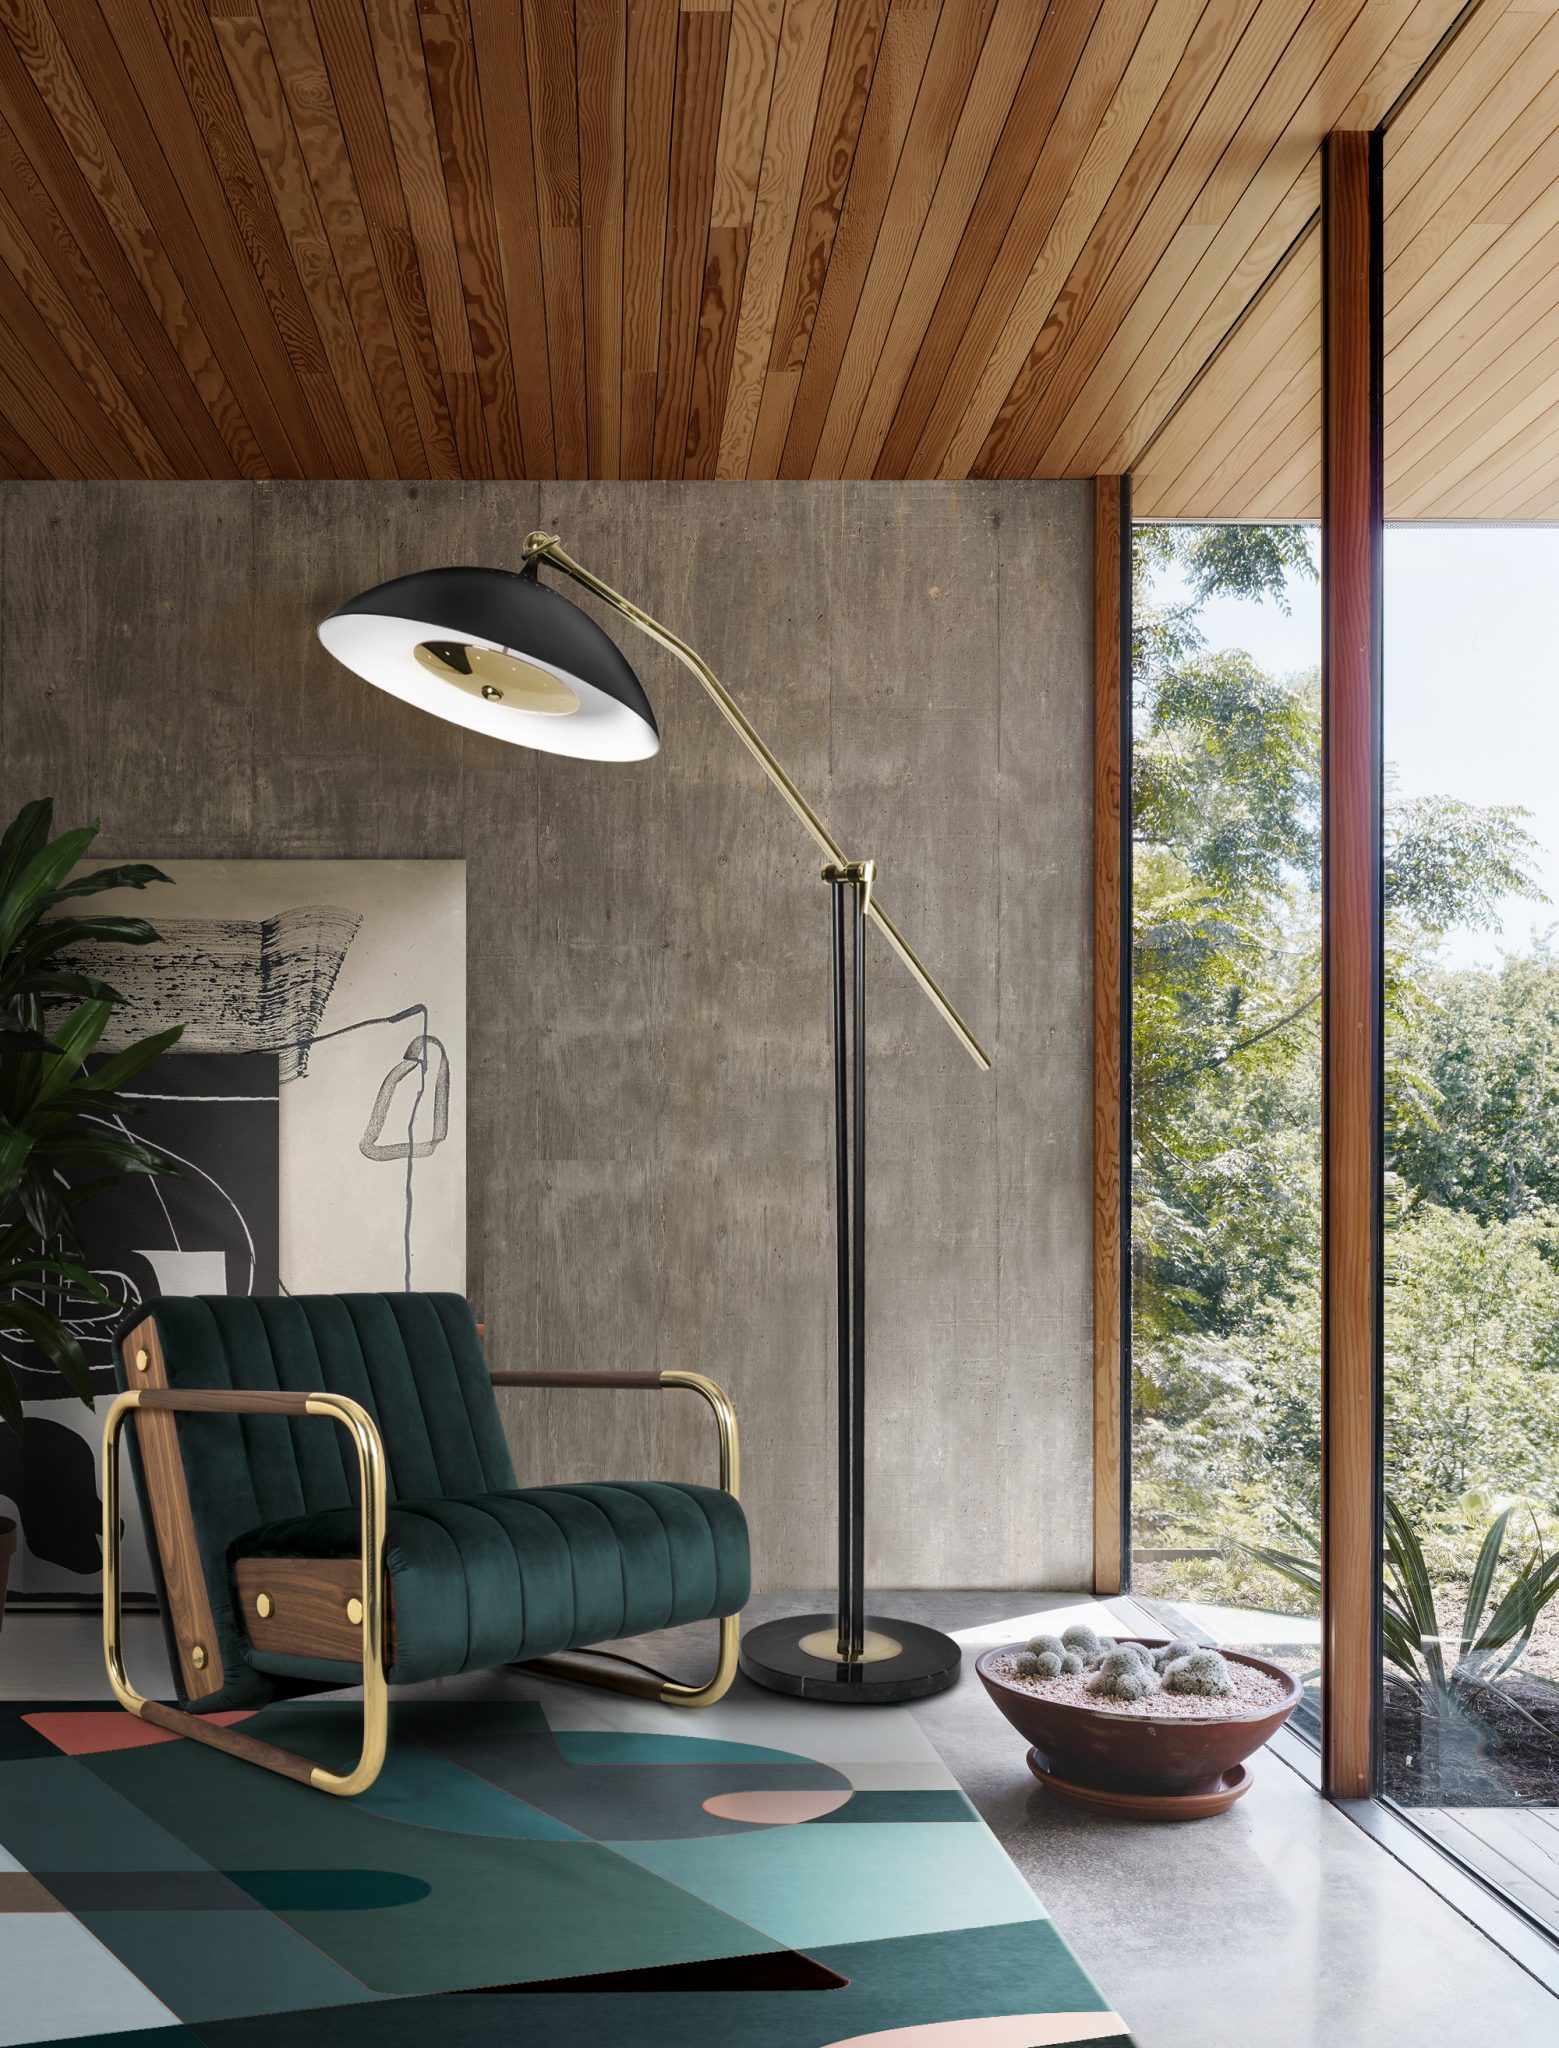 DECOR EVERY CORNER IN YOUR HOUSE WITH MID-CENTURY DETAILS